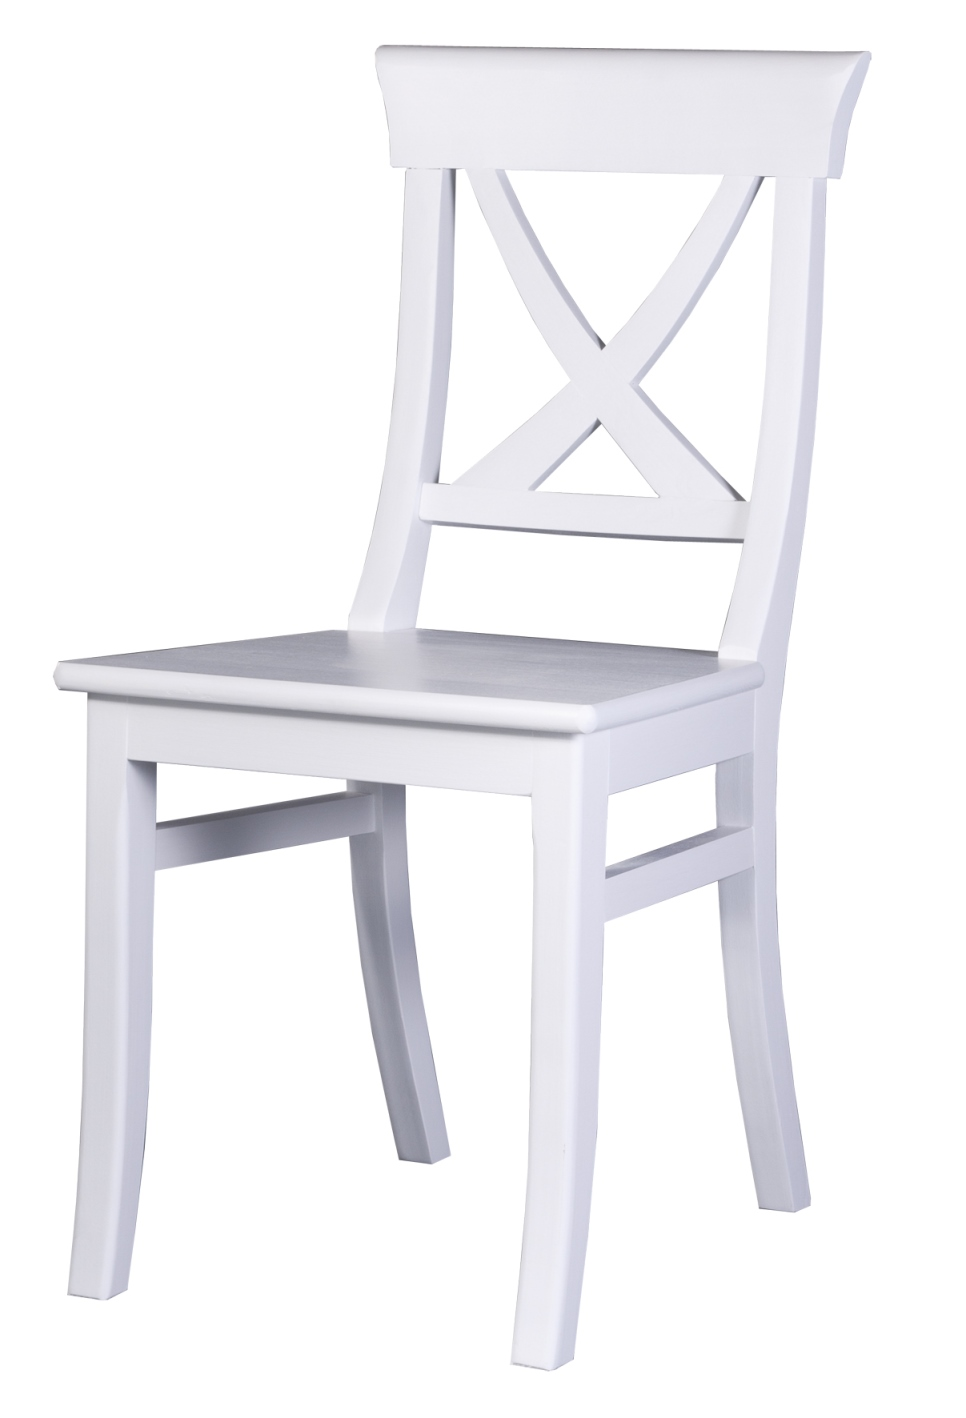 HERITAGE TRADITIONAL LINE DINING CHAIR  w 45 x d 49 x h 92 cm  € 187 ( 30% OFF, NOW € 130.90 )  Product Code: TL-1223  This piece may be ordered in any of the Heritage colours and finishes.